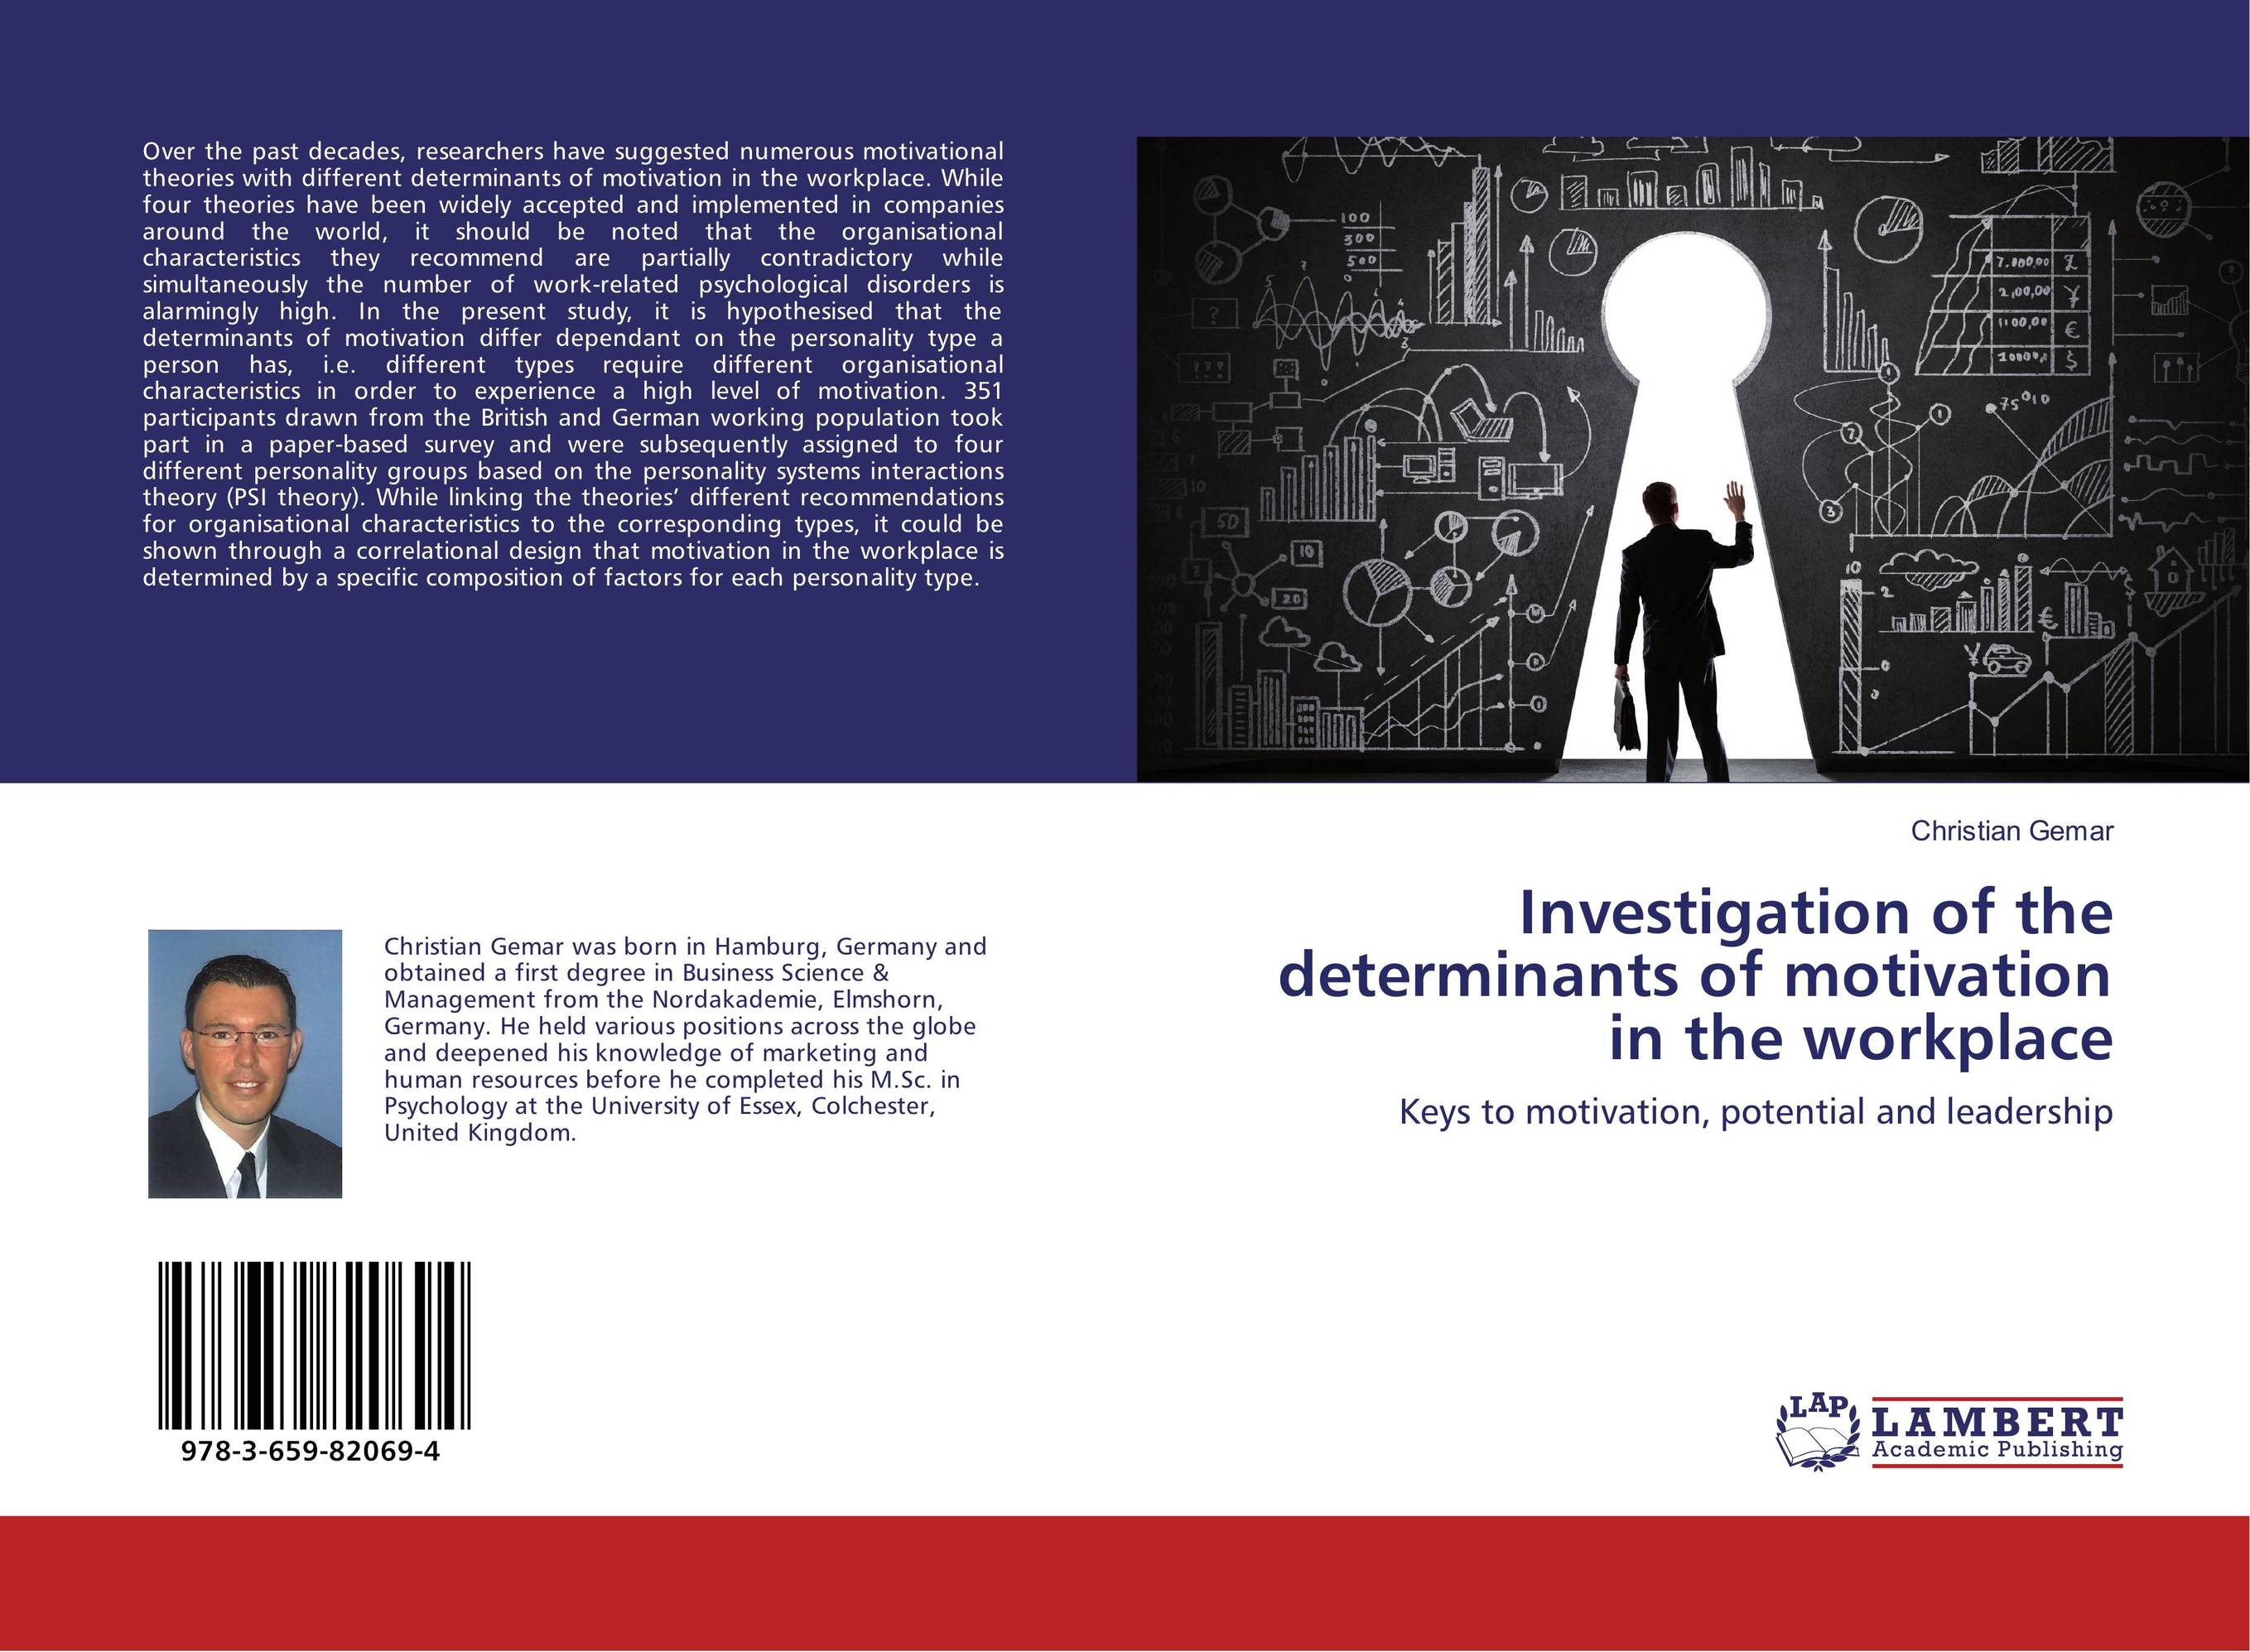 case studies on motivation in the workplace Read motivation in the workplace: a procter and gamble case study by gabriele napolitano with rakuten kobo the topic of motivation in the workplace is becoming recognized as an issue of growing importance not just for employees.